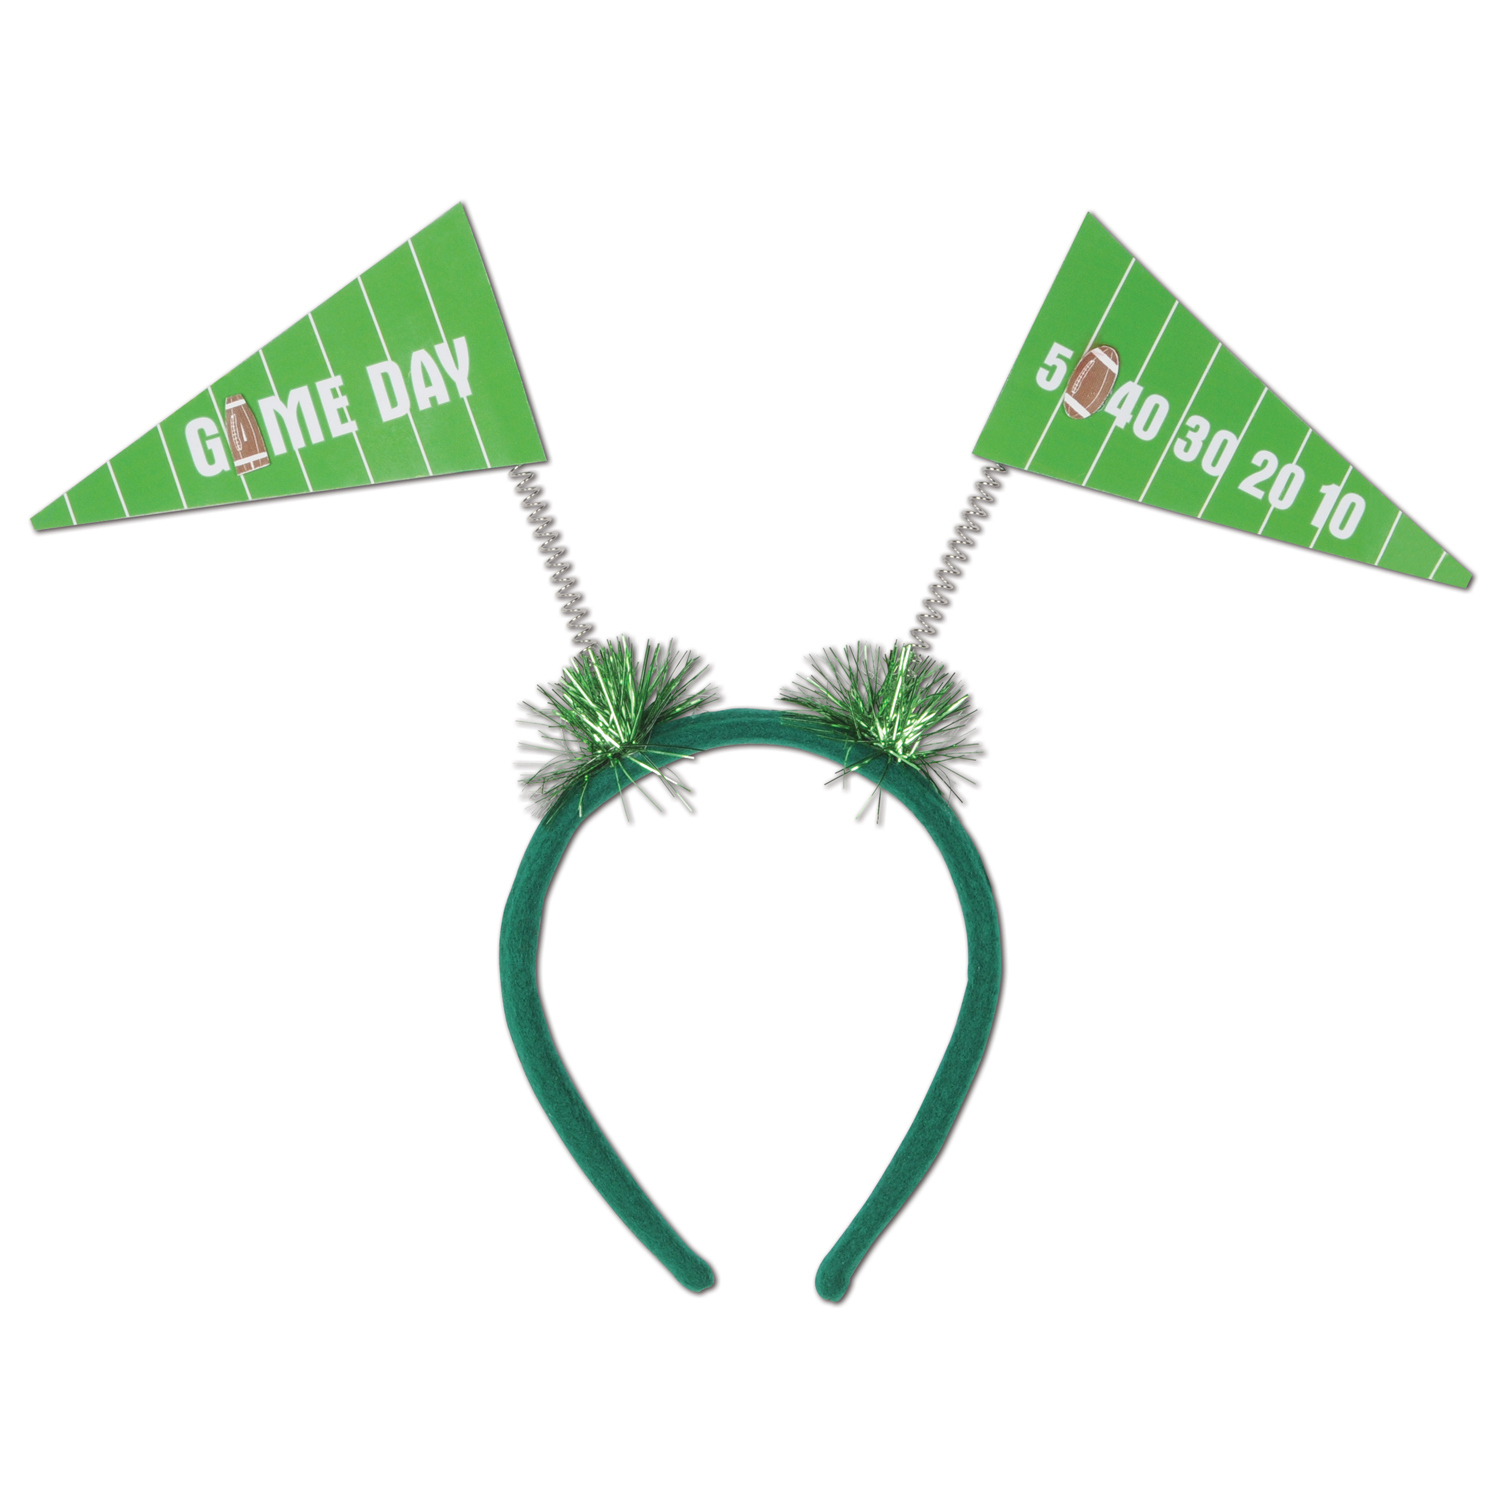 Game Day Pennant Flag Boppers (Pack of 12) Game Day Boppers, Football Headband, Pennant Flag Boppers, Green Headbands, Wholesale party supplies, Inexpensive party favors, Game Day Accessories, Football decorations, Cheap football supplies